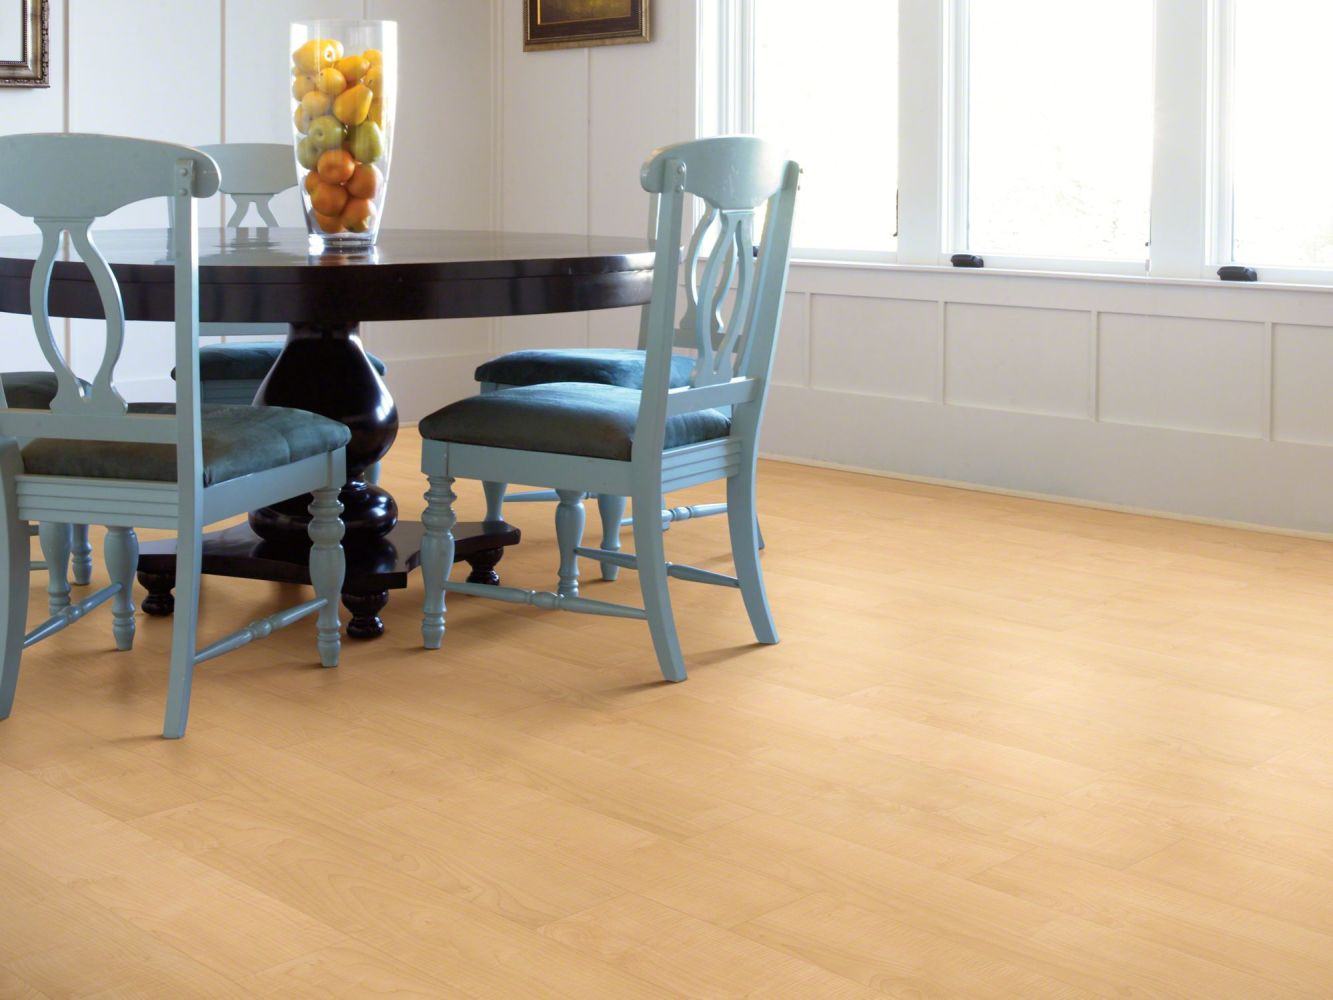 Shaw Floors Vinyl Residential Urbanality 6 Plank Bright Lights 00225_0309V